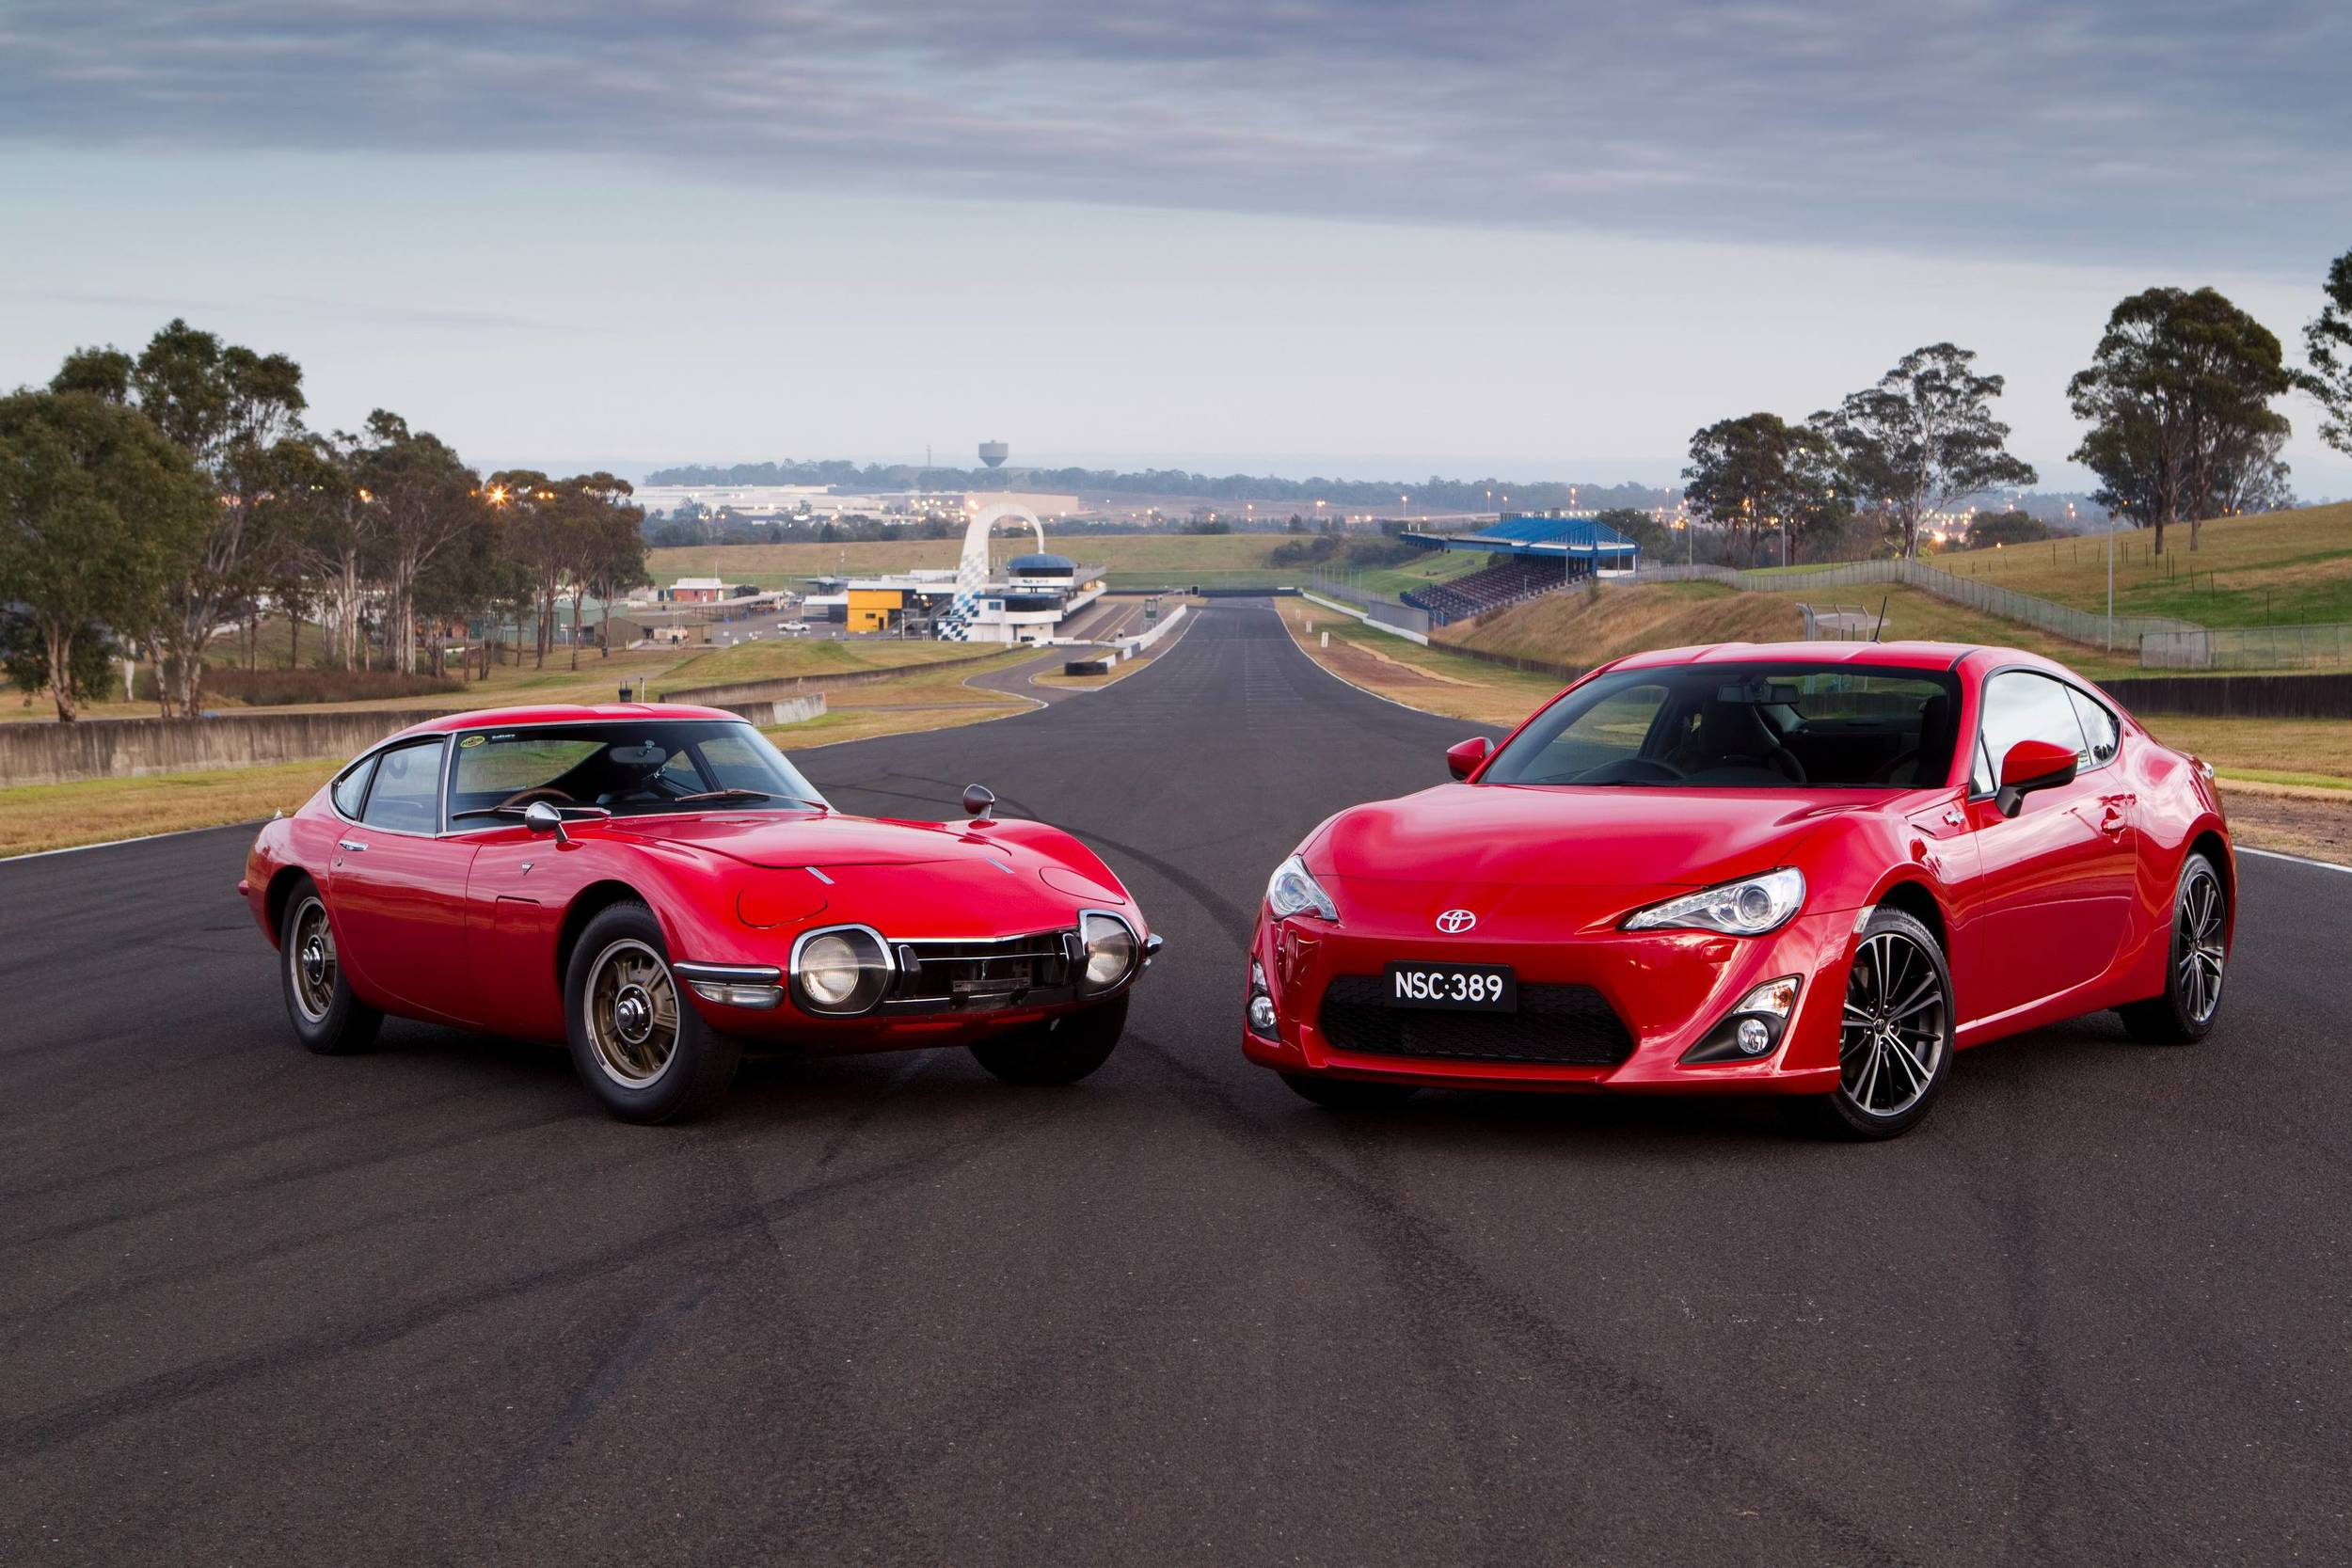 Toyota 2000GT with Scion FR-S for scale